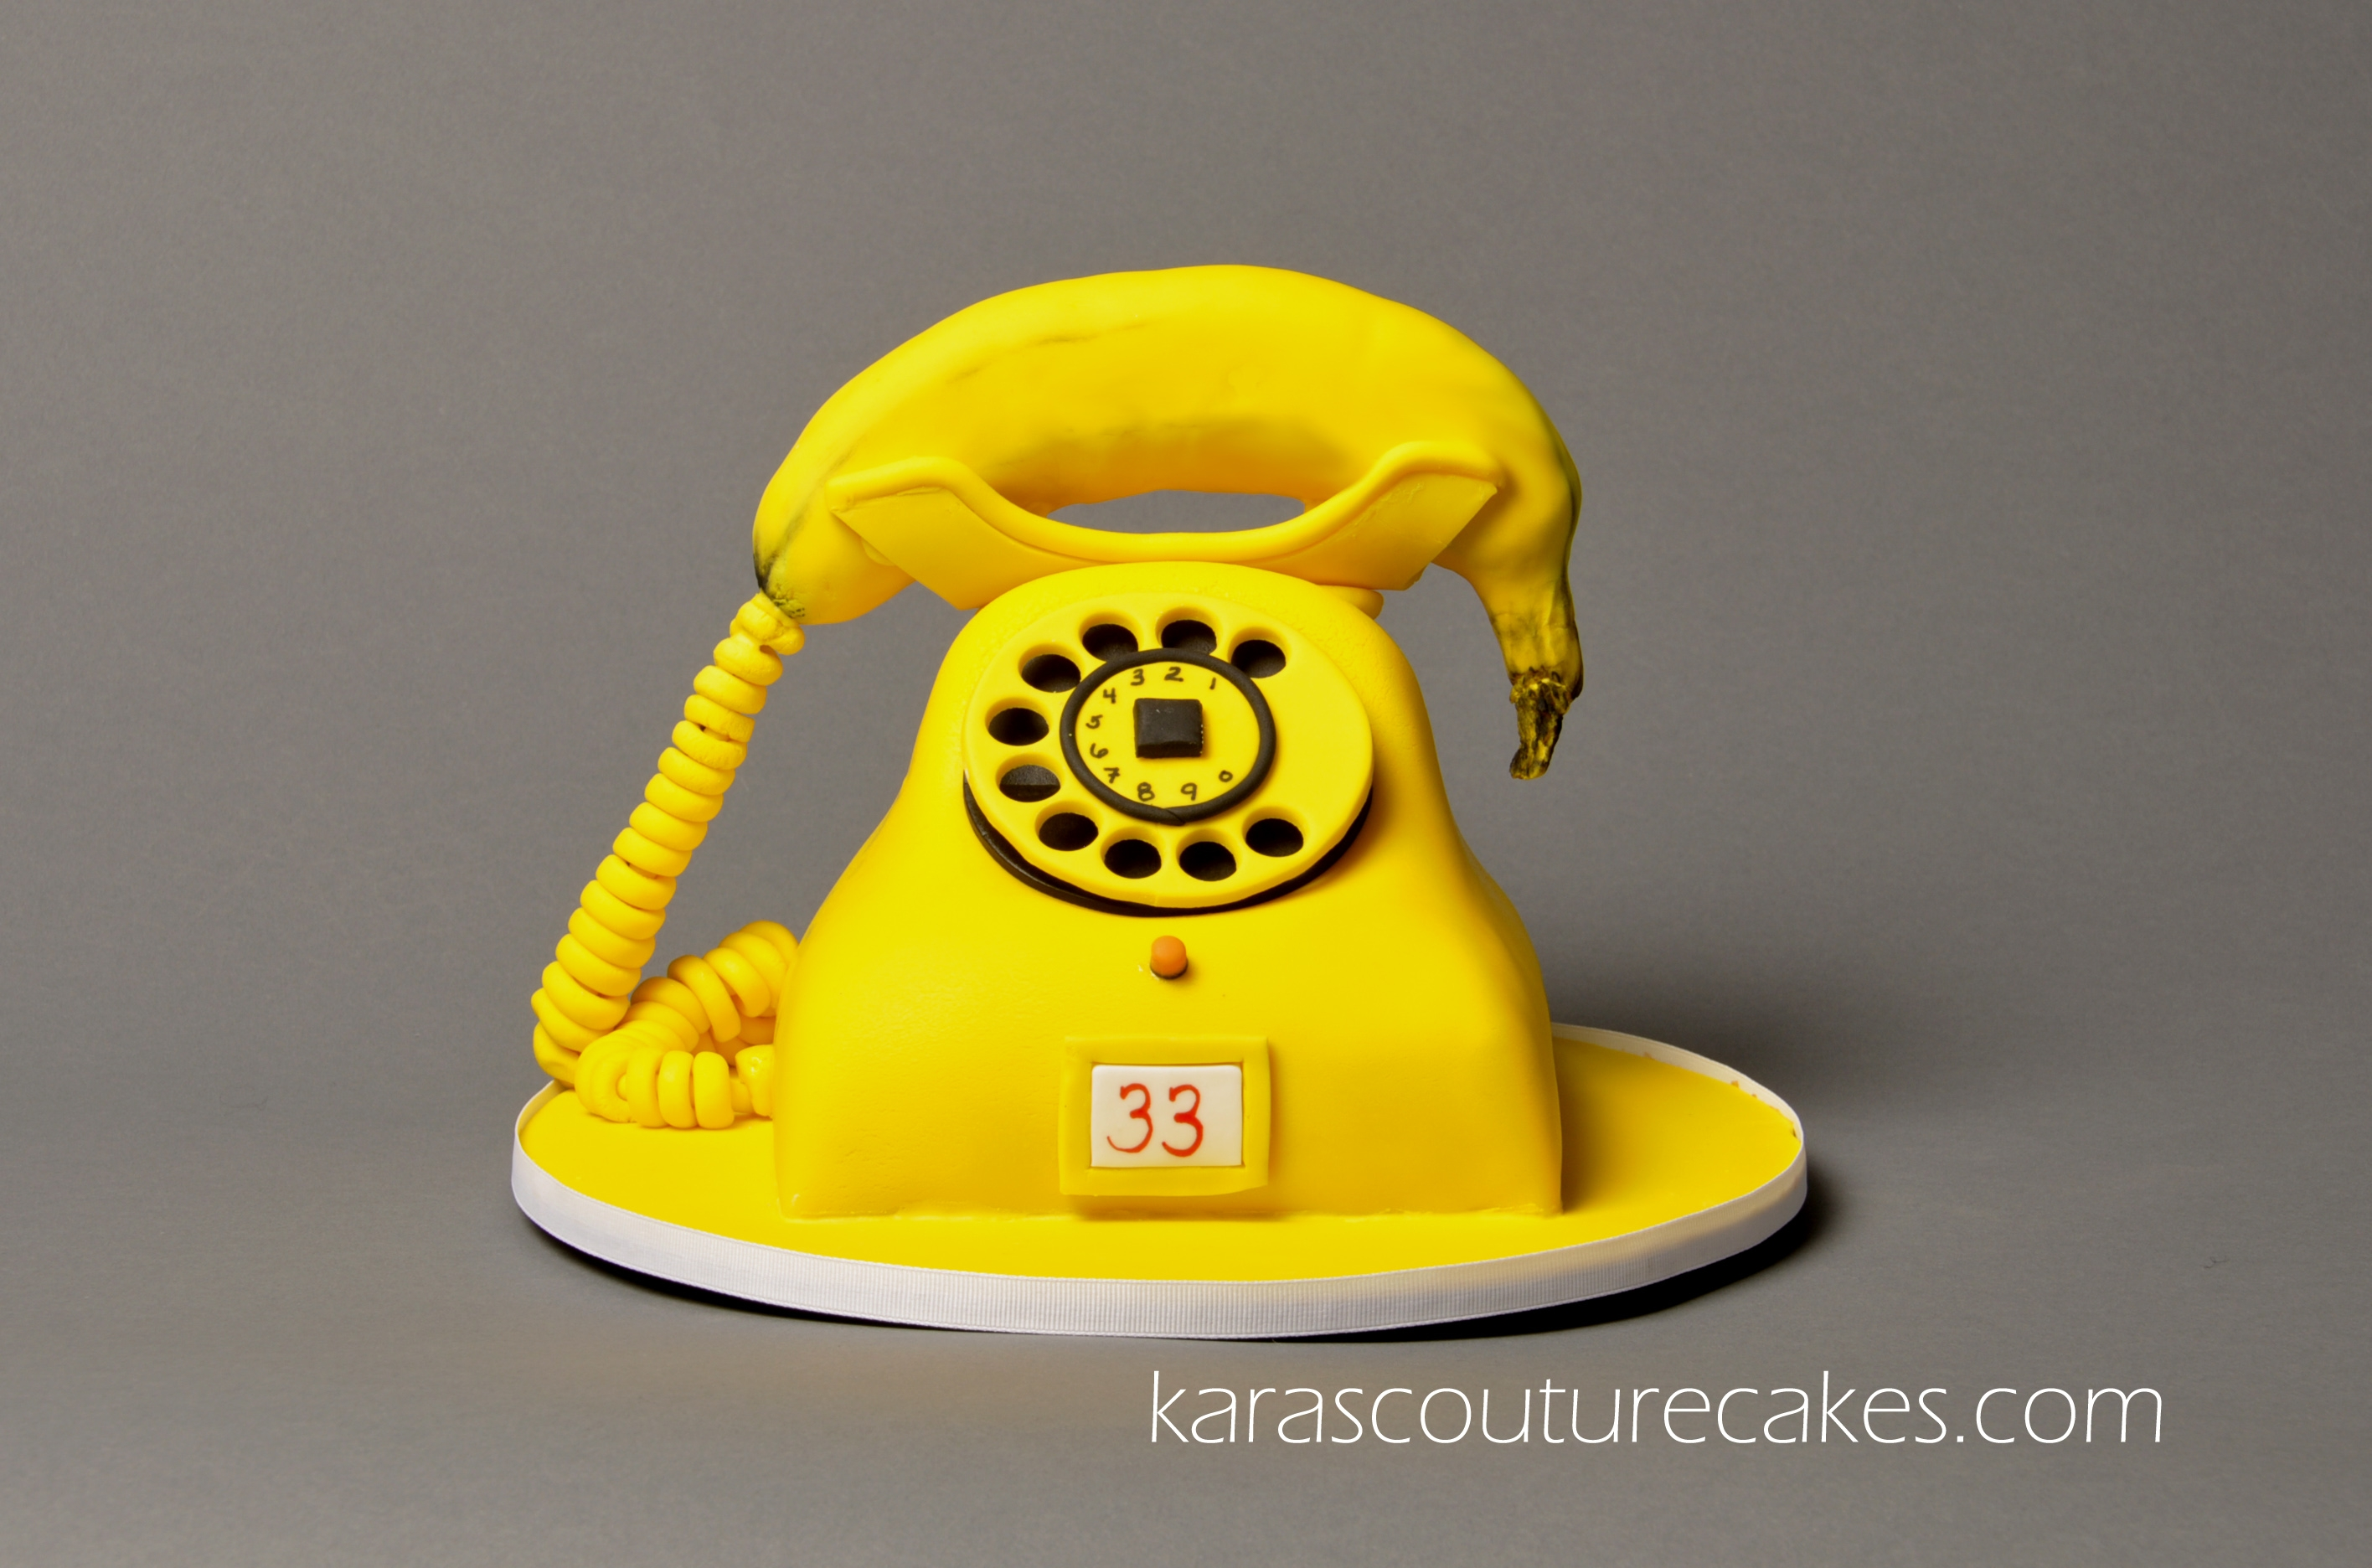 A sculpted banana phone cake requested for a 33rd birthday.